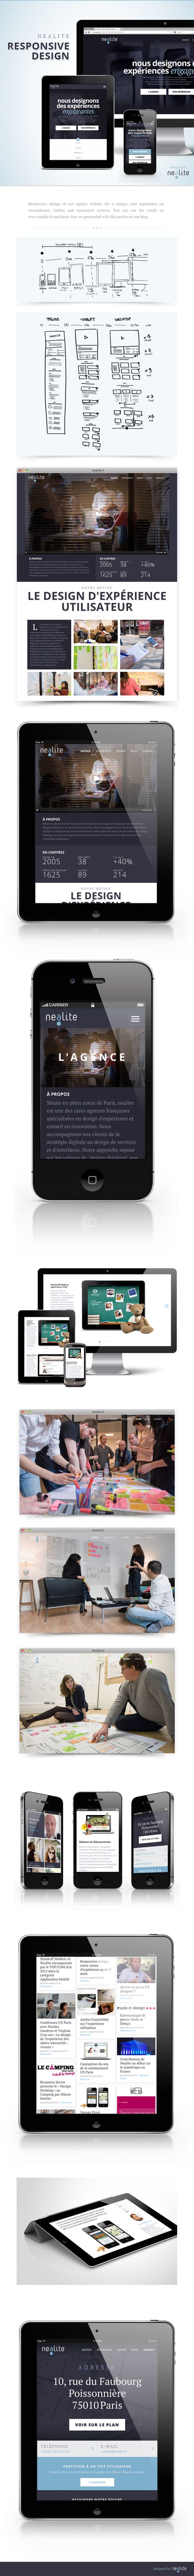 Responsive design of our agency website for a unique user experience on smartphones, tablets and computers screens.